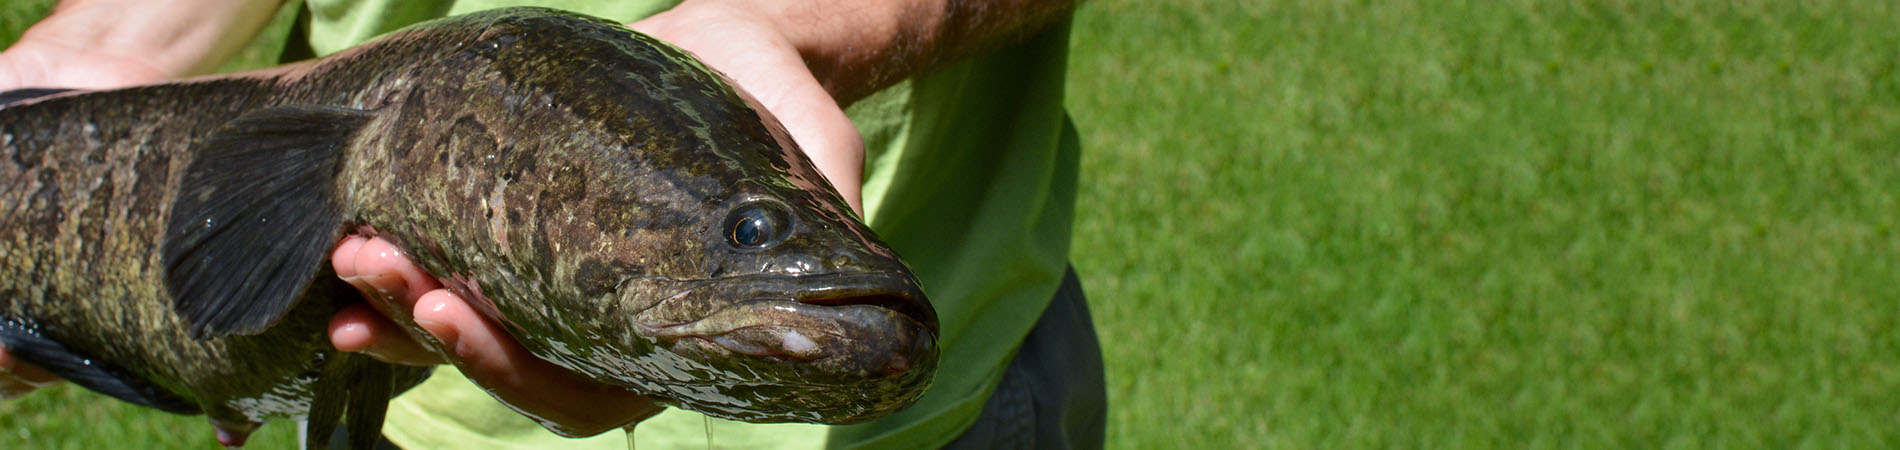 Northern Snakehead held over grass